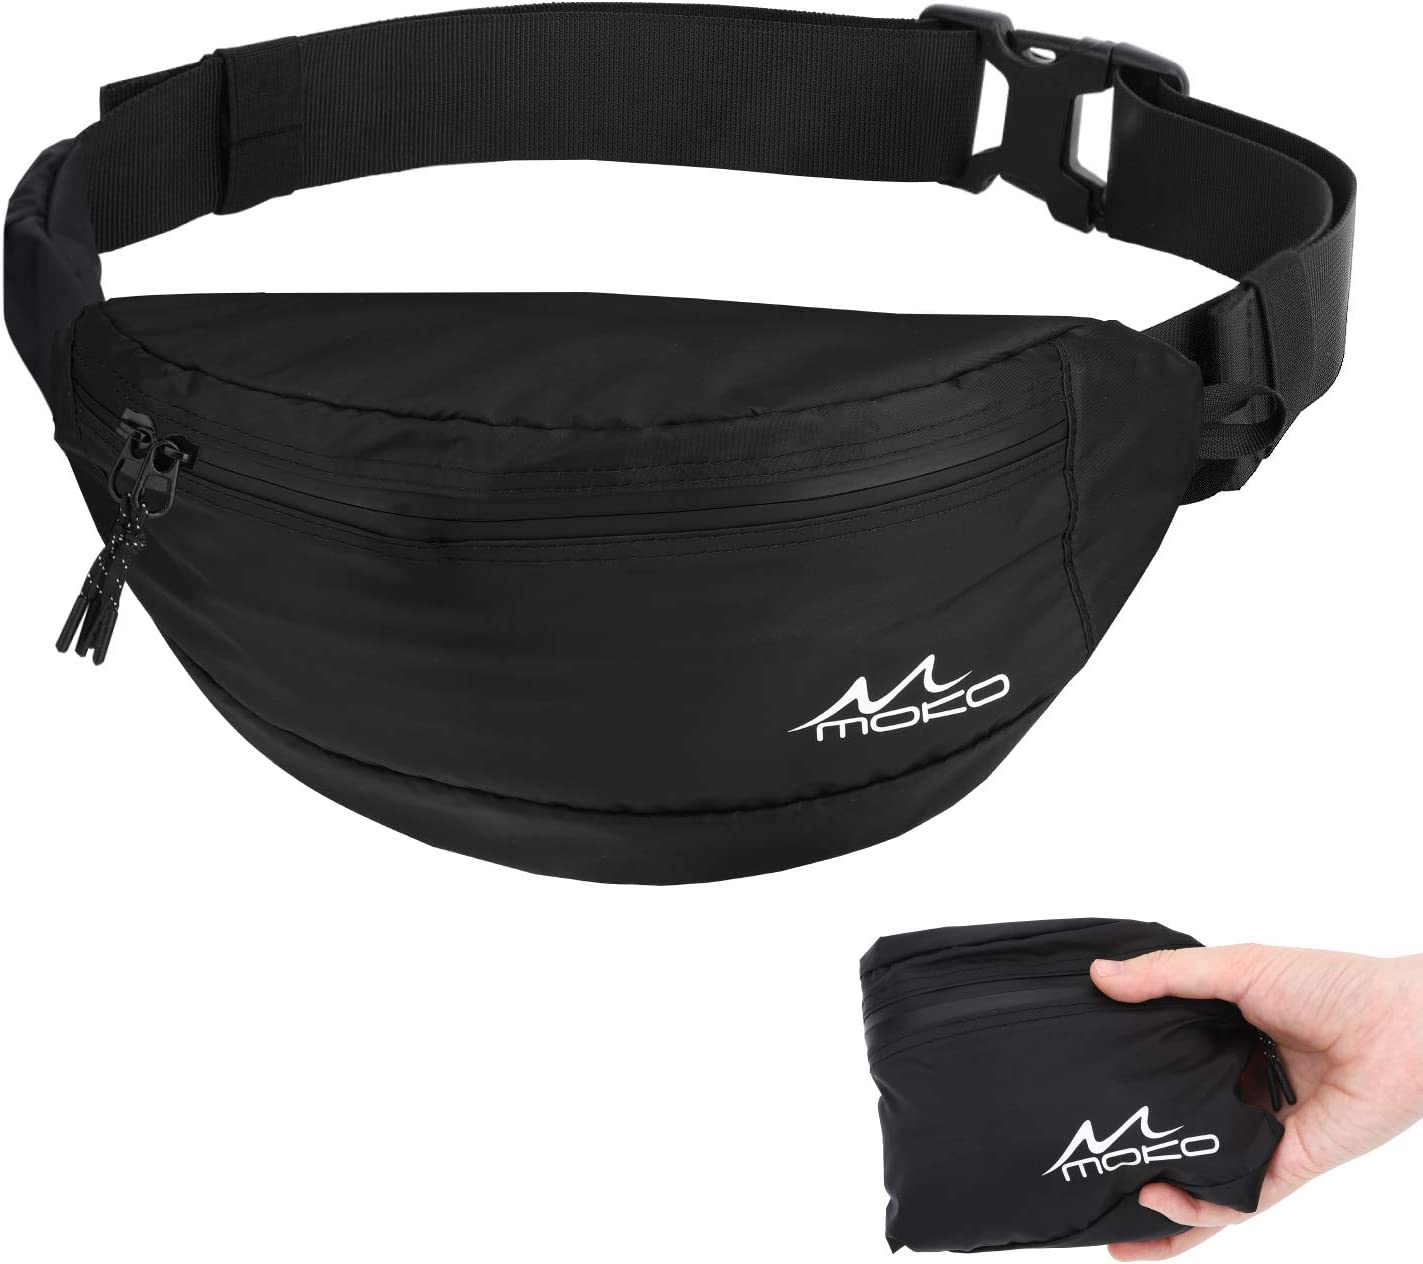 MoKo Selling and selling Waist Bag Fanny Pack Adju Lightweight with Resistant Water Minneapolis Mall